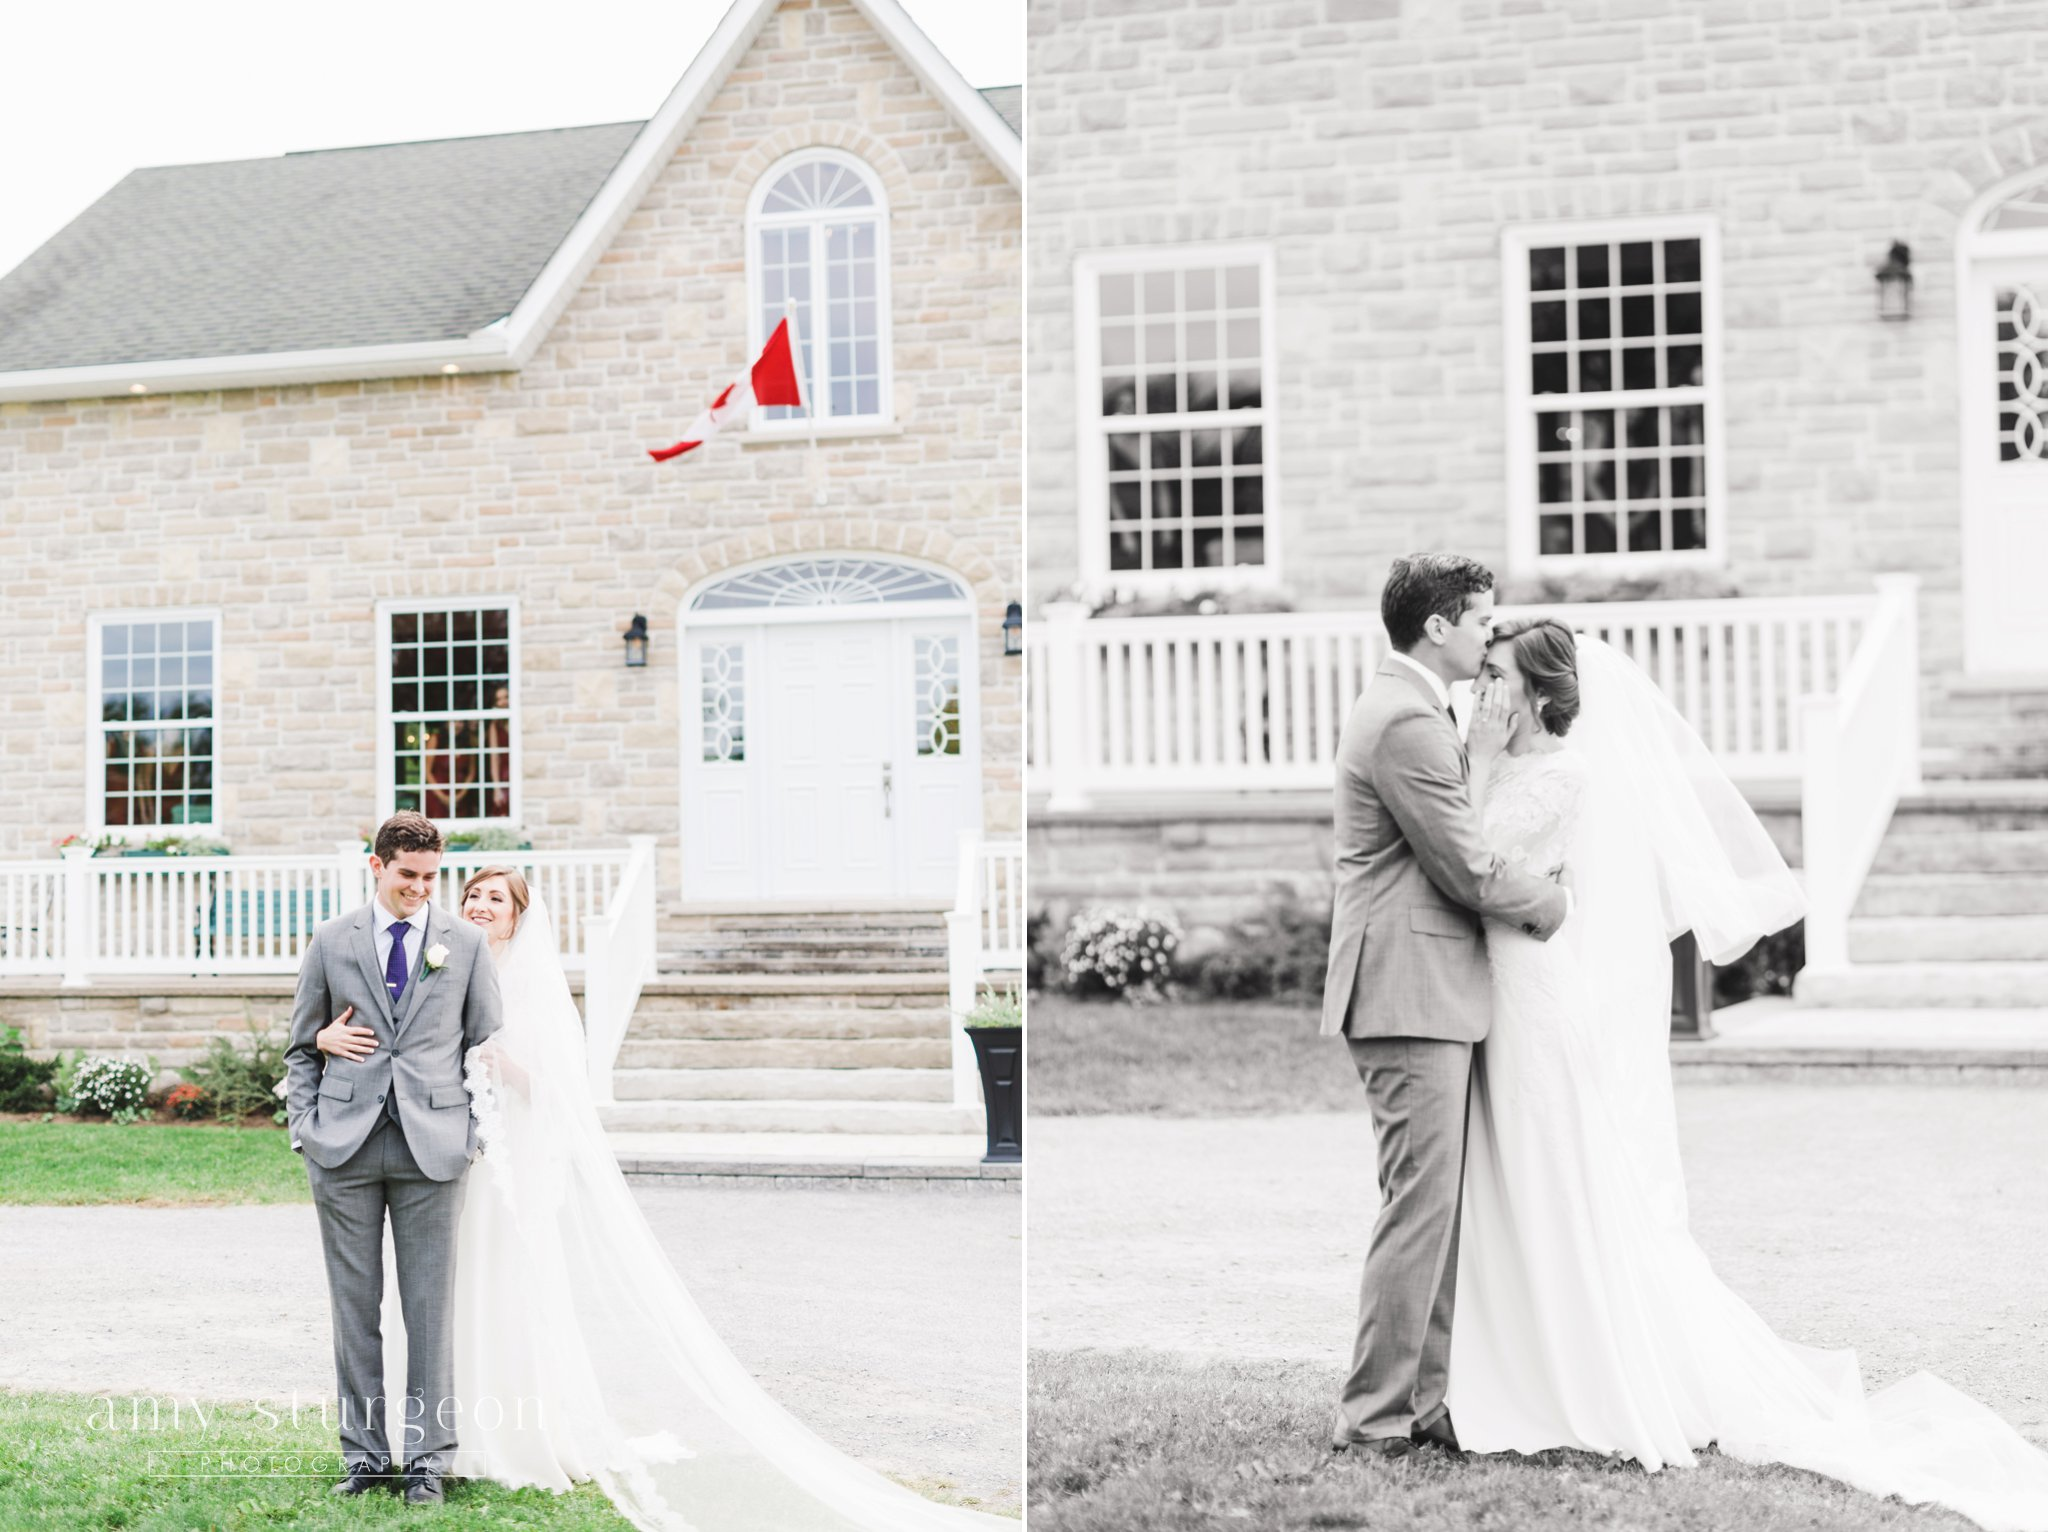 The groom kissed the bride's forehead after their first look at the alpaca farm wedding in ottawa